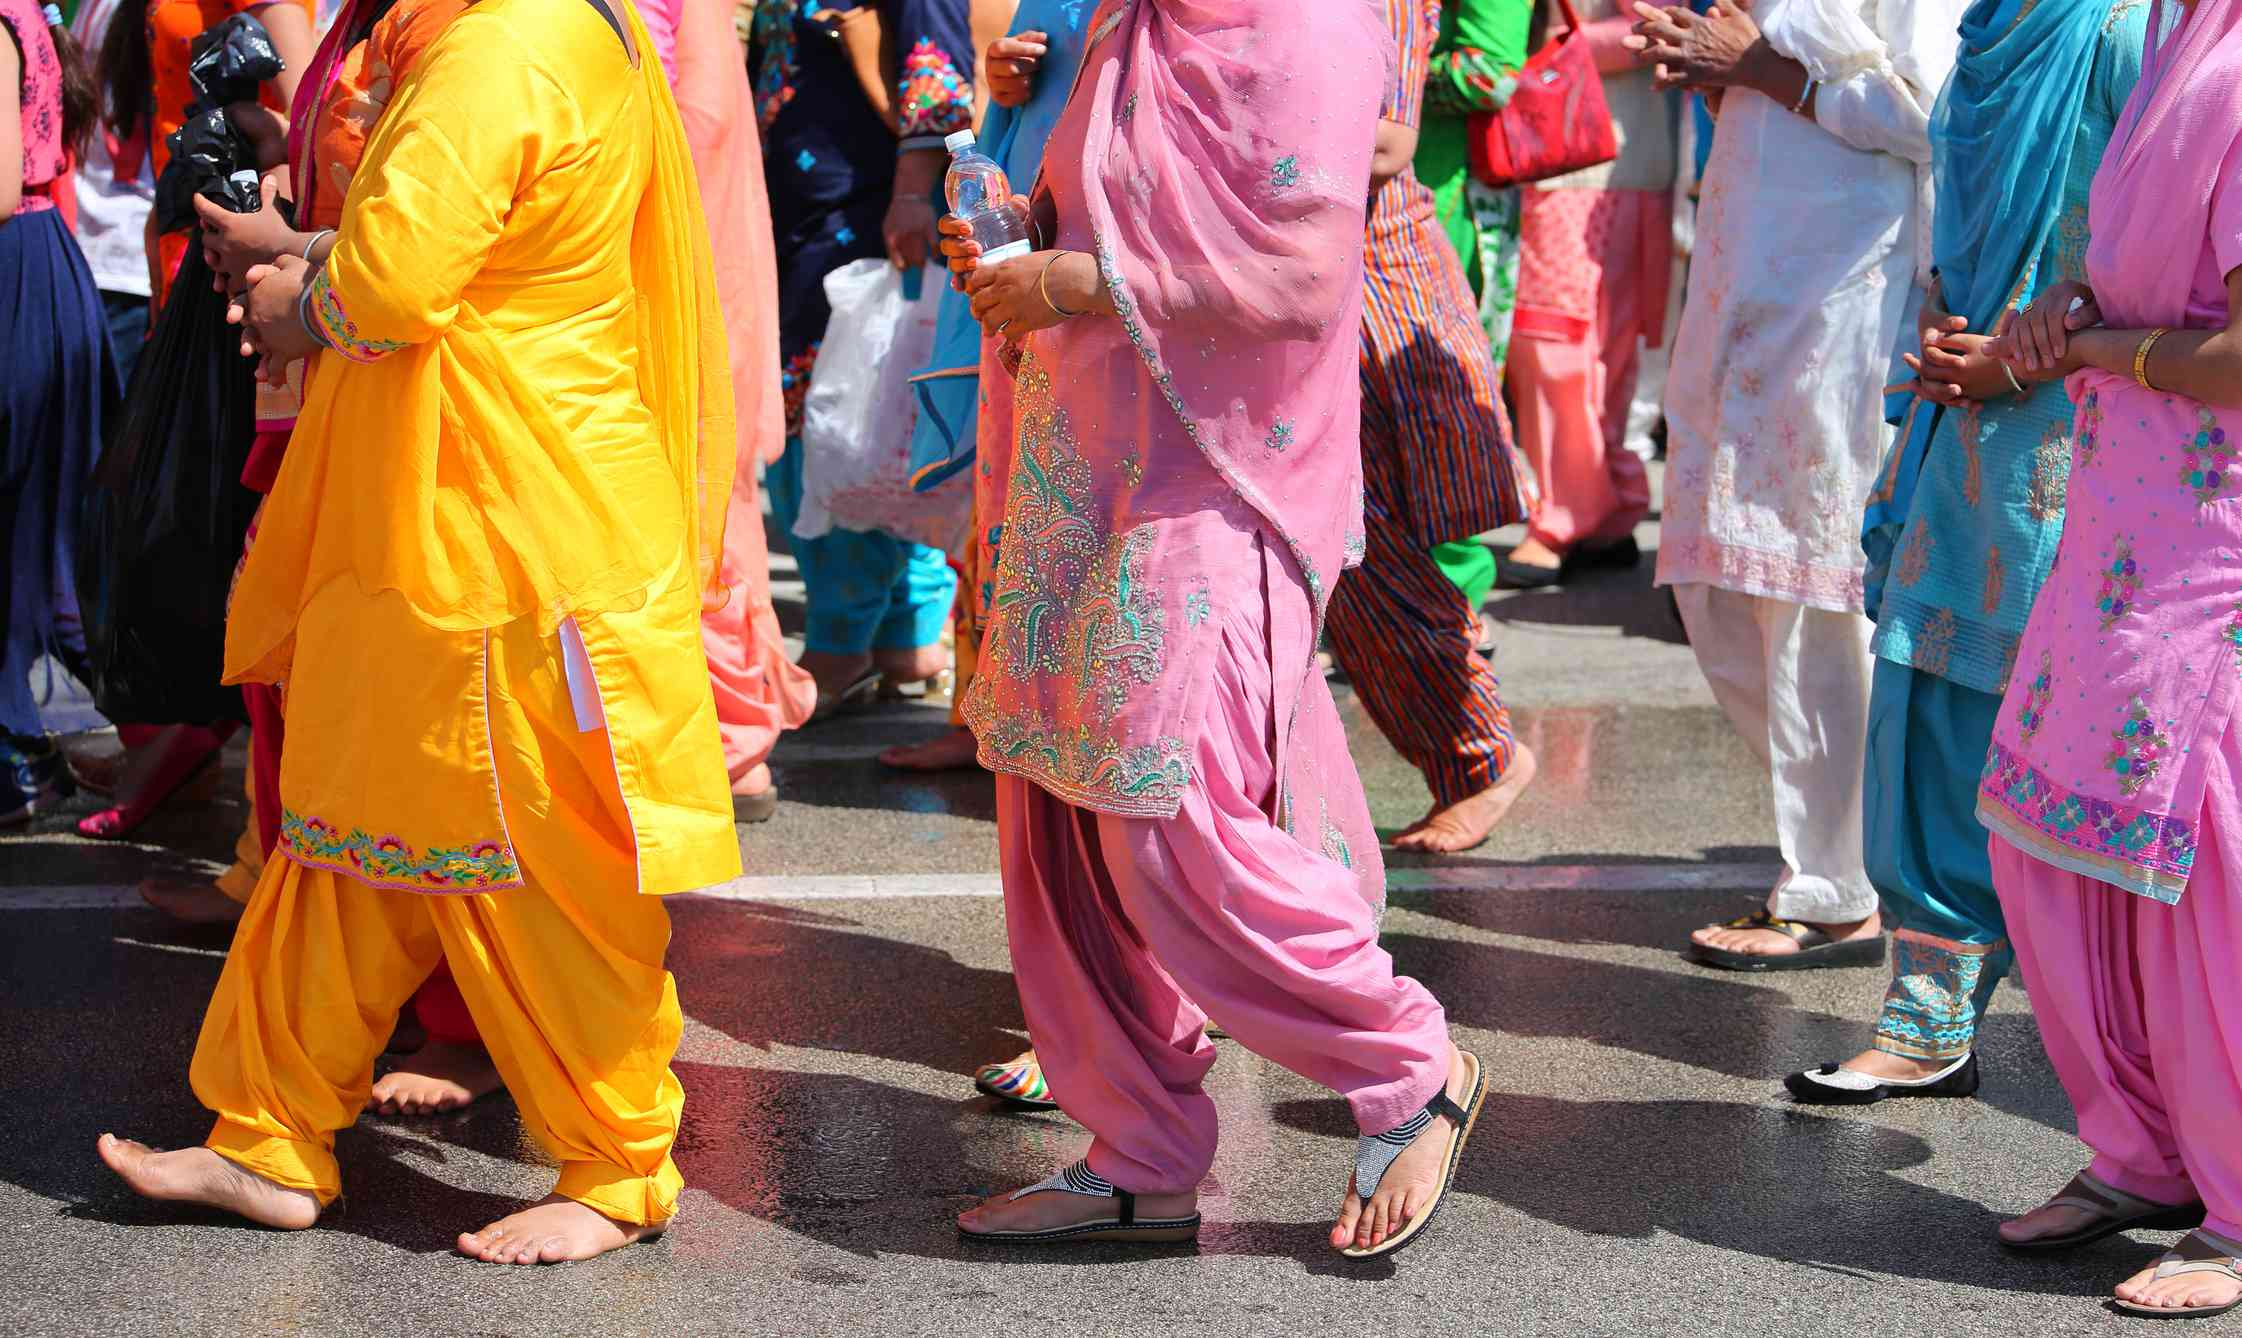 Barefoot Sikh women dressed in colorful traditional clothes